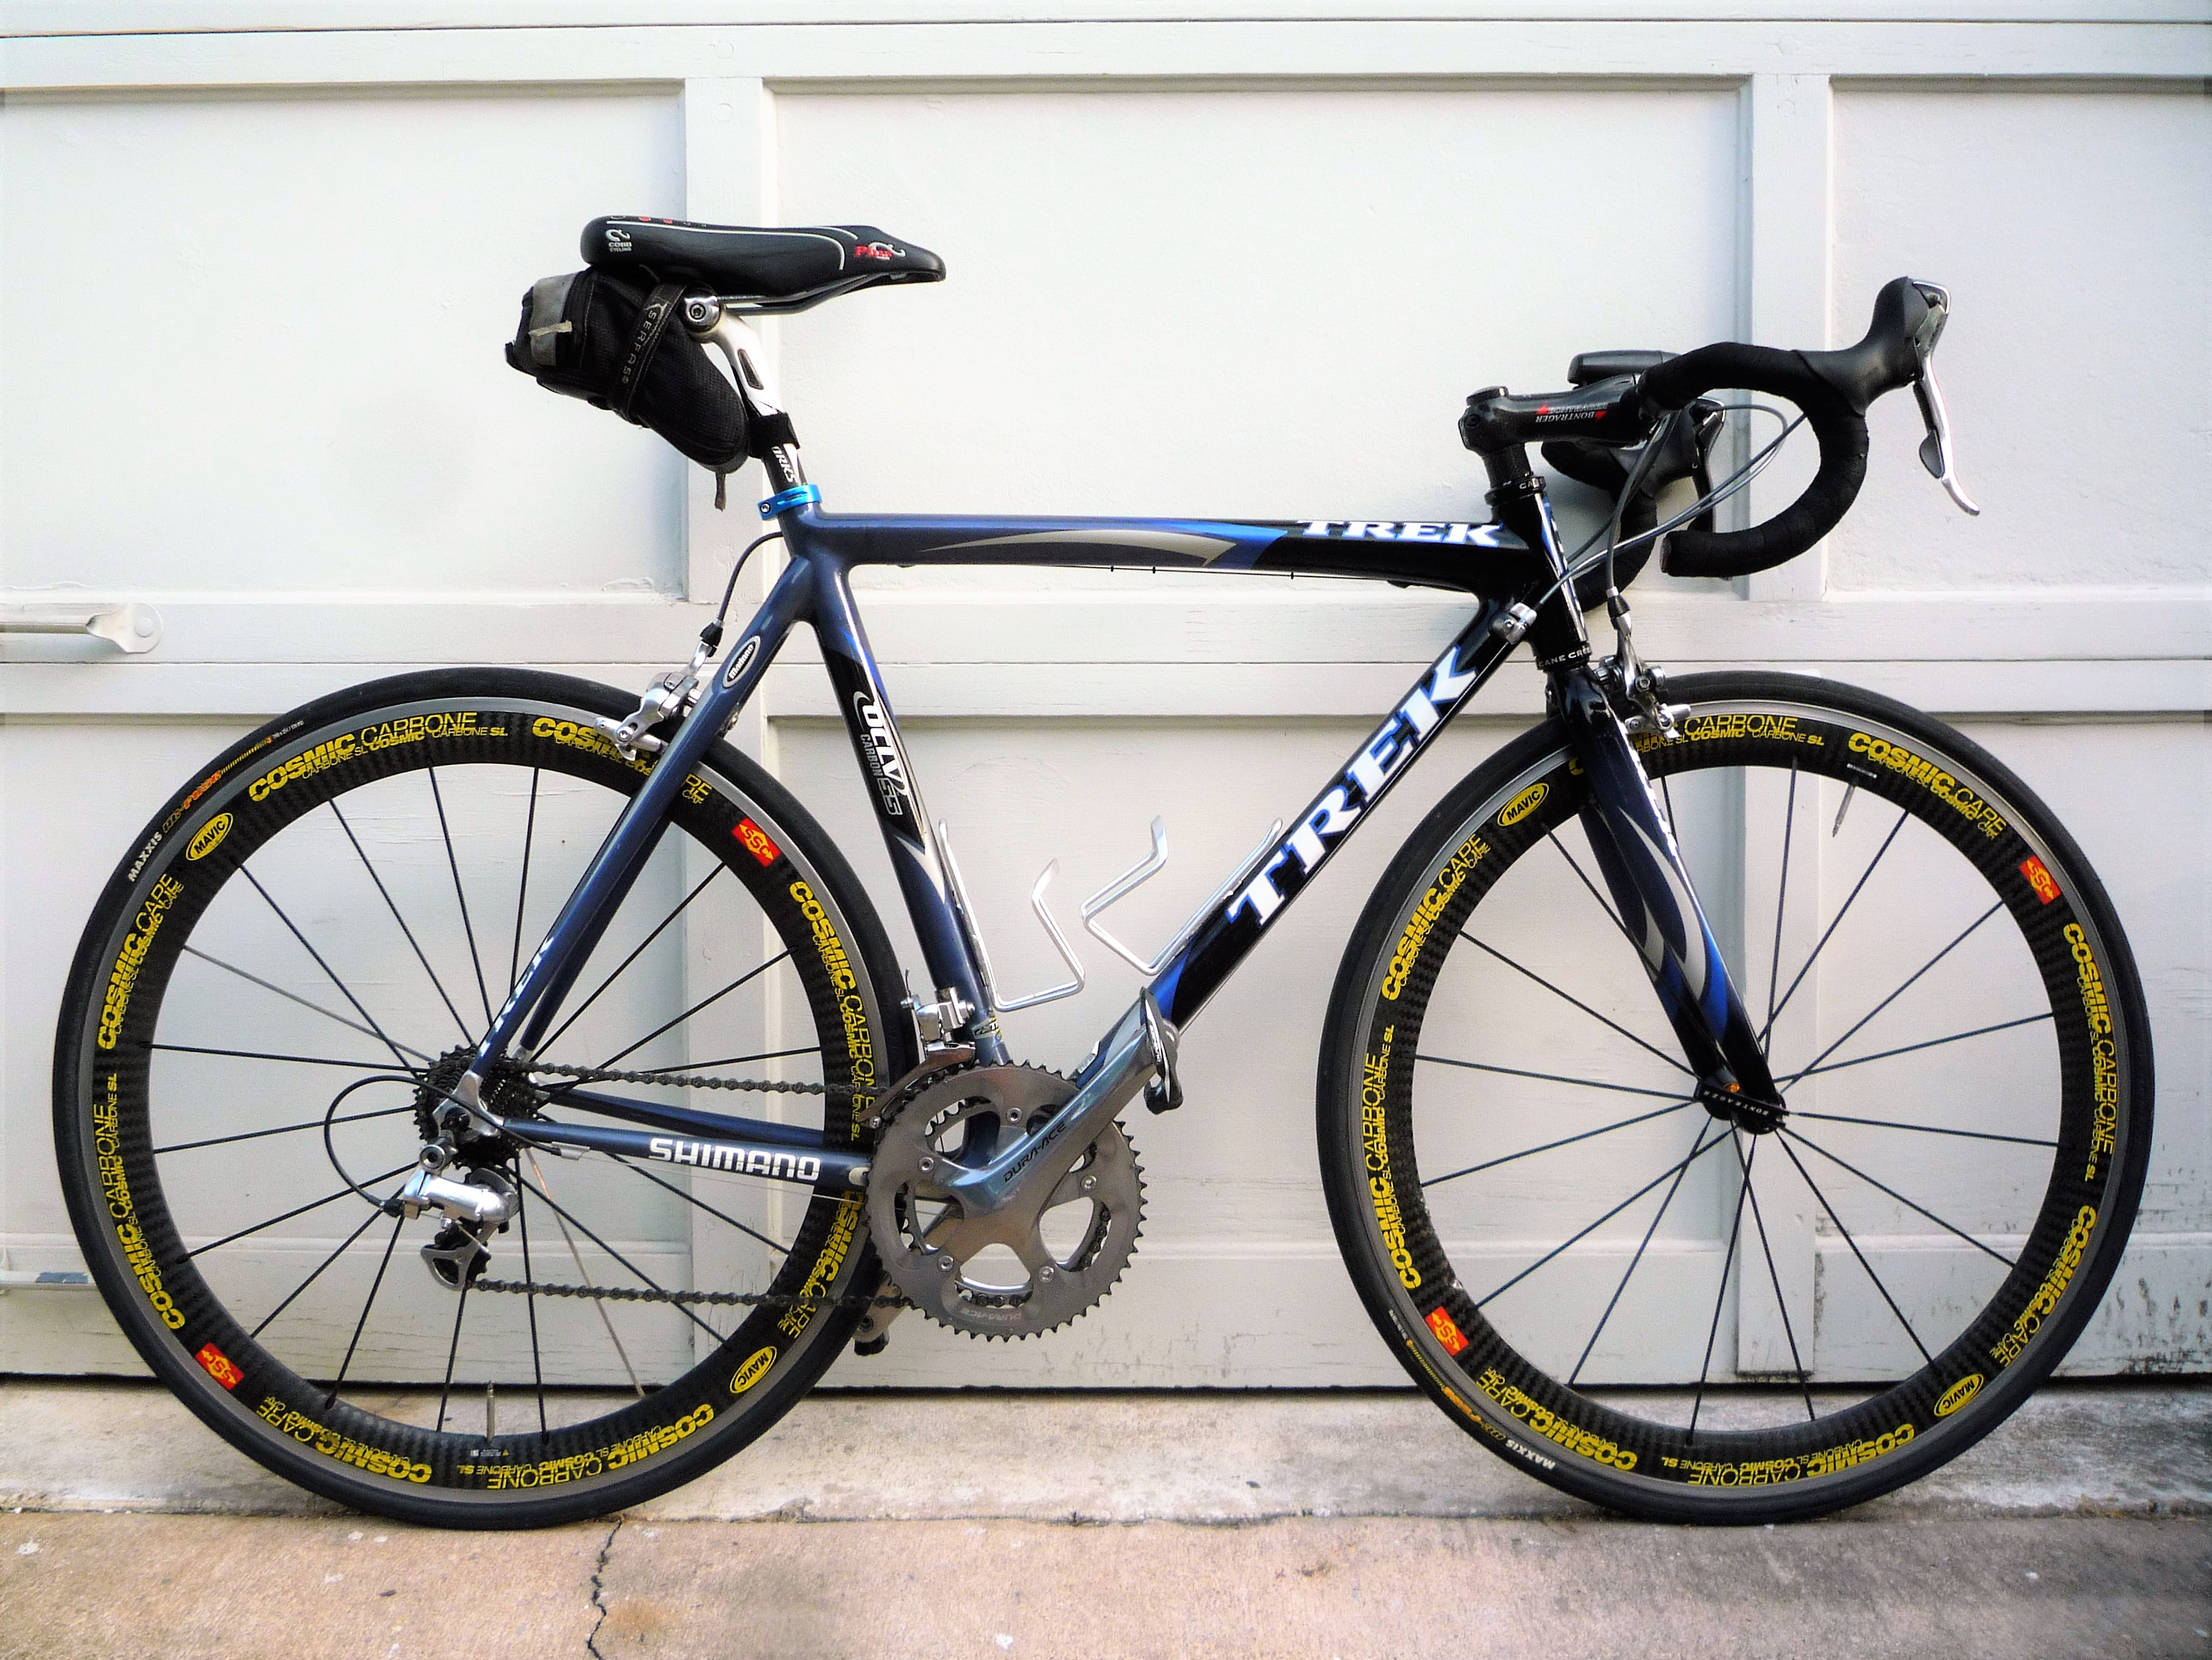 Racing Bike $7700 Trek Ssl - Ultra-light Road Racing Bike - Oclv 55